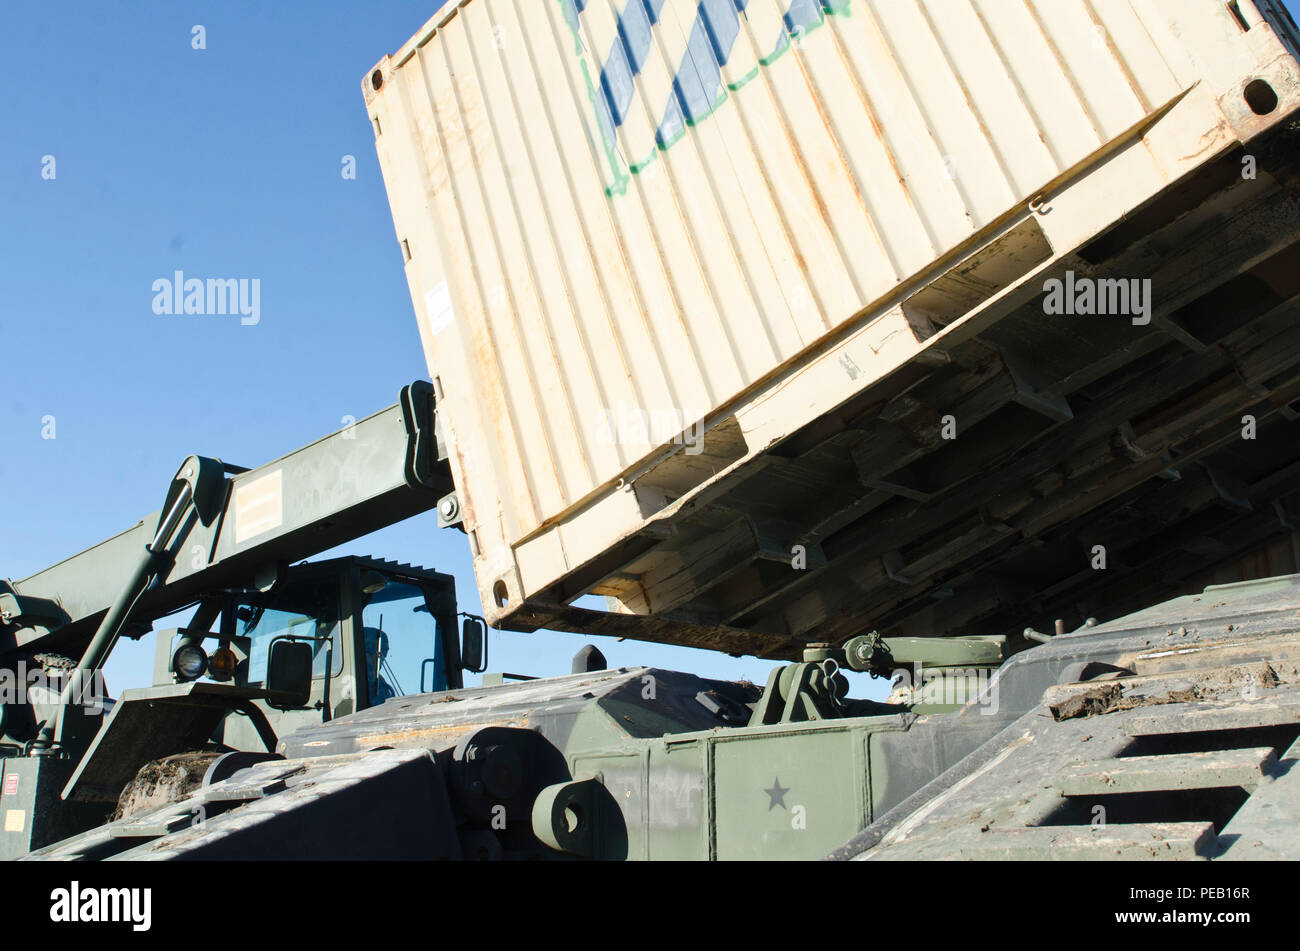 Sgt. Will Davis, a wheeled vehicle mechanic attached to 5th Squadron, 7th Cavalry Regiment, 3rd Infantry Division, Fort Stewart, Ga., originally from Rome, Ga., carefully places a container onto the trailer of an M1070 Heavy Equipment Transporter System during a transporting operation in Smardan, Romania, Dec. 2, 2015. (U.S. Army Photo by Staff Sgt. Steven M. Colvin/Released) - Stock Image